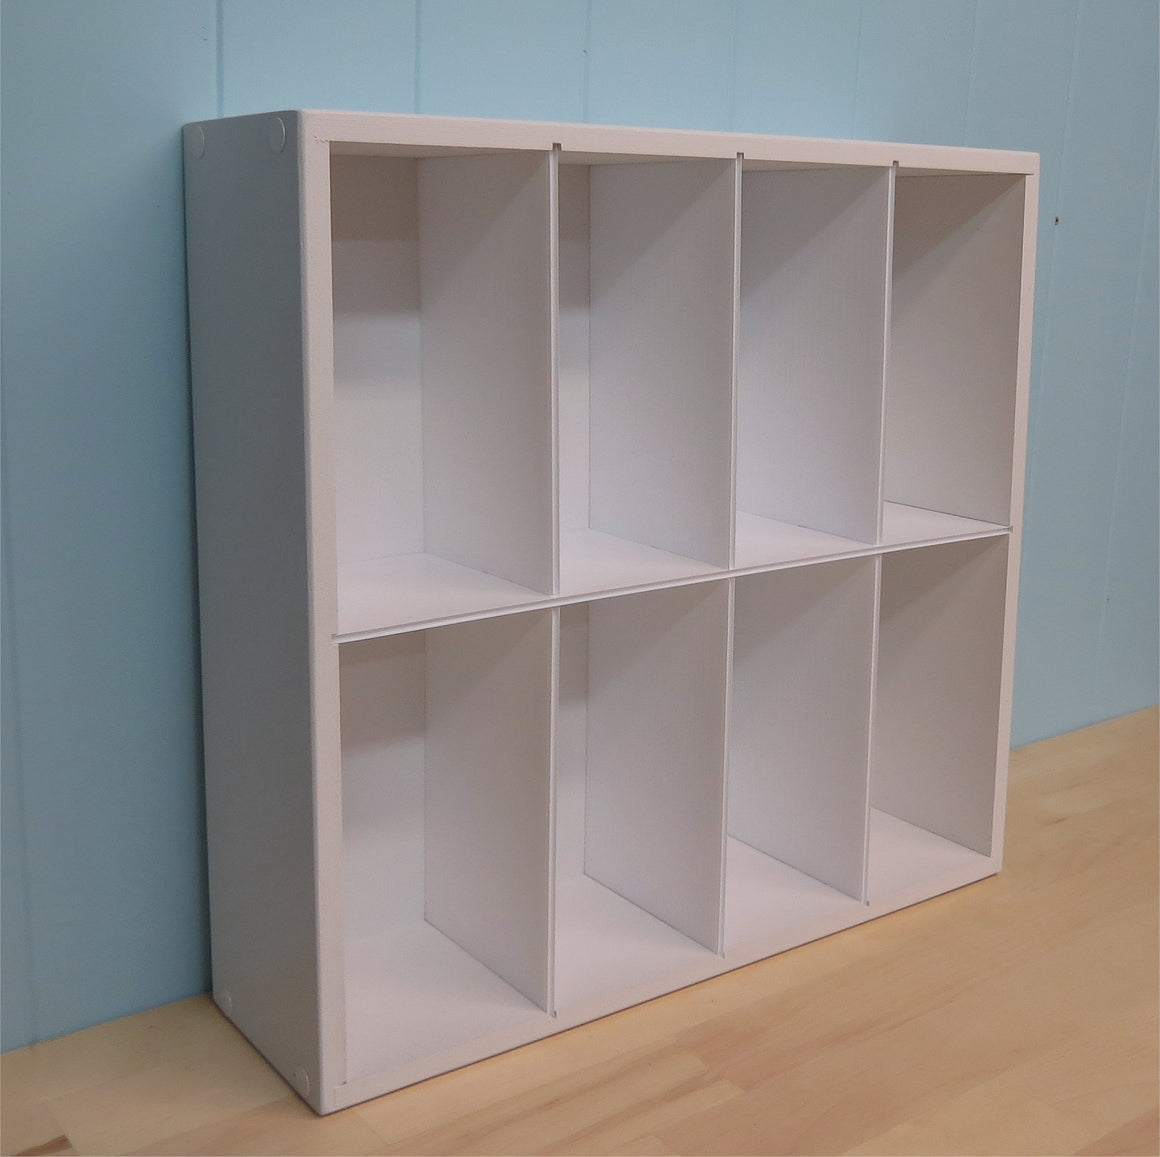 A picture of the empty craft organizer for DVD style Stamp Sets.